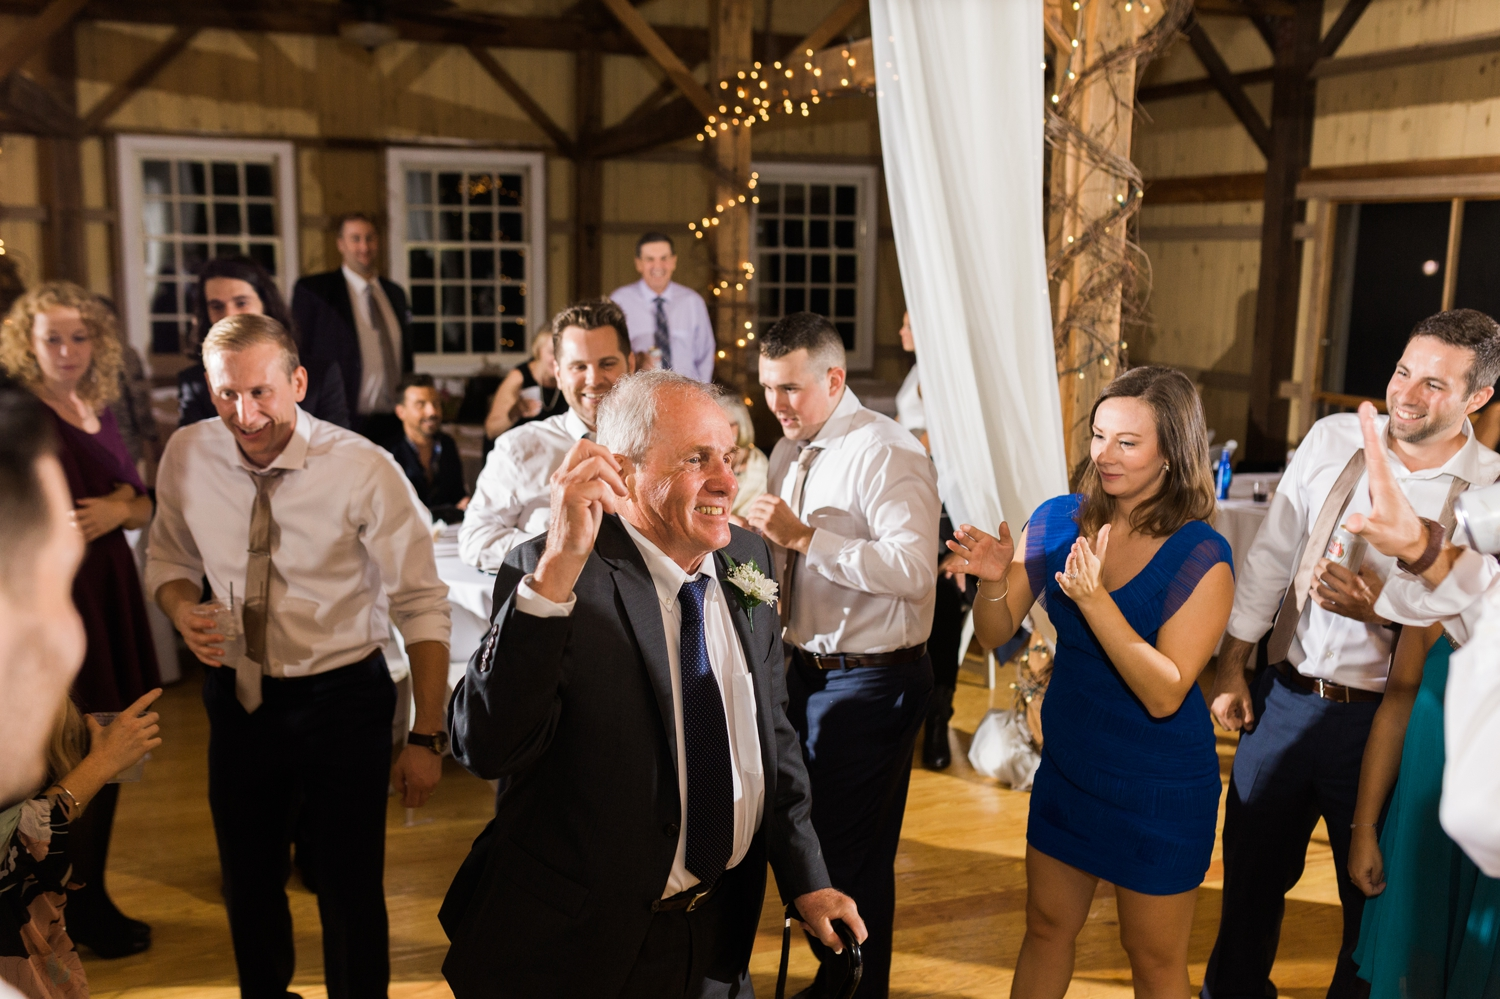 Loved this part of the night! Brendan's Dad had some moves!